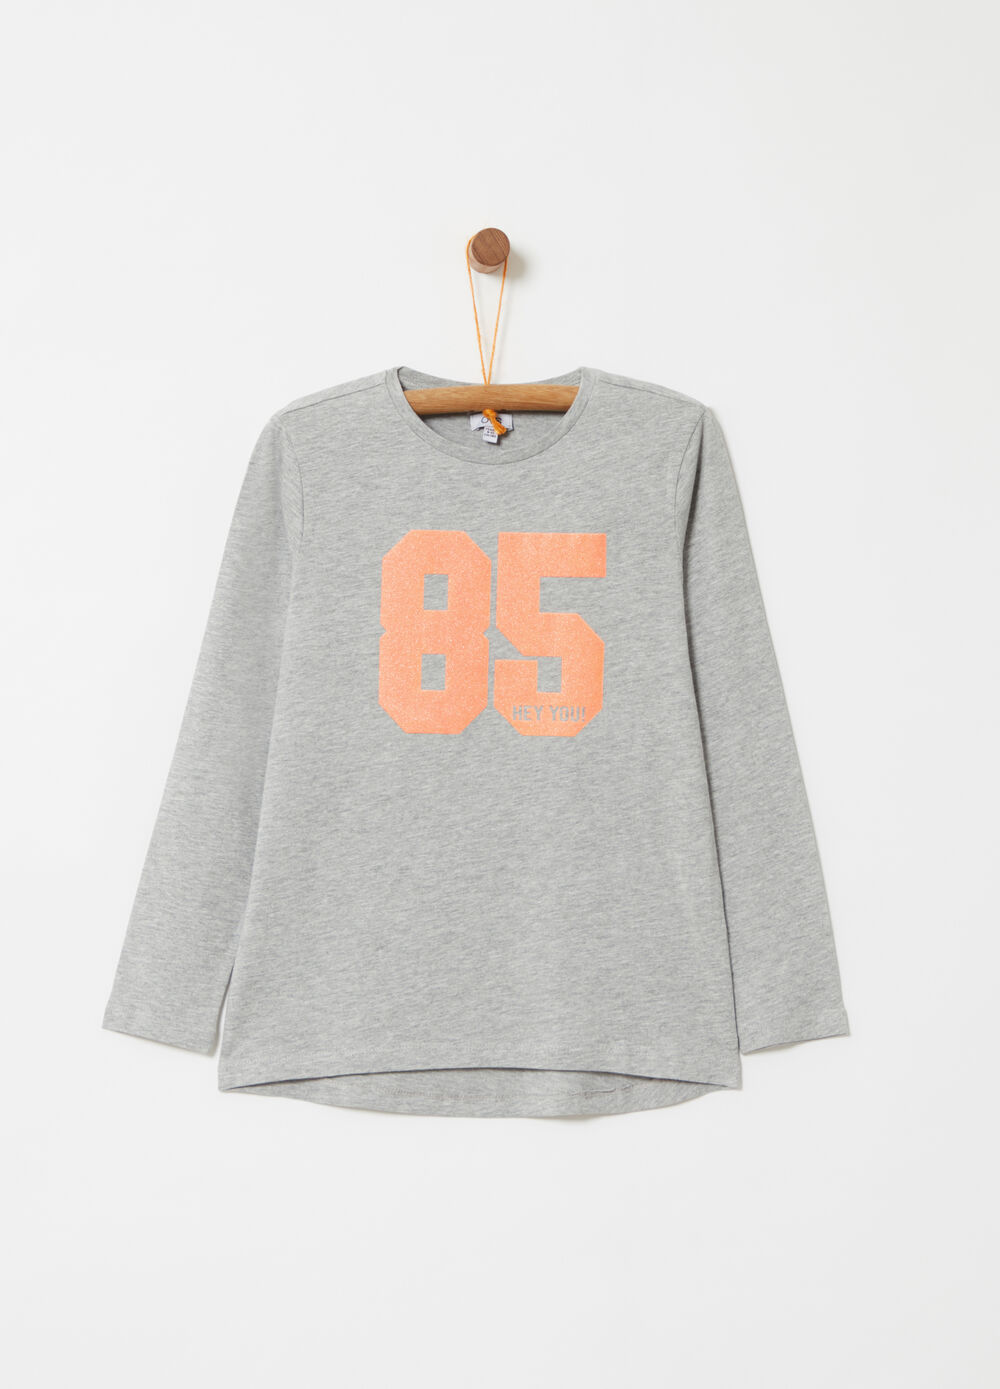 T-shirt with printed glitter lettering